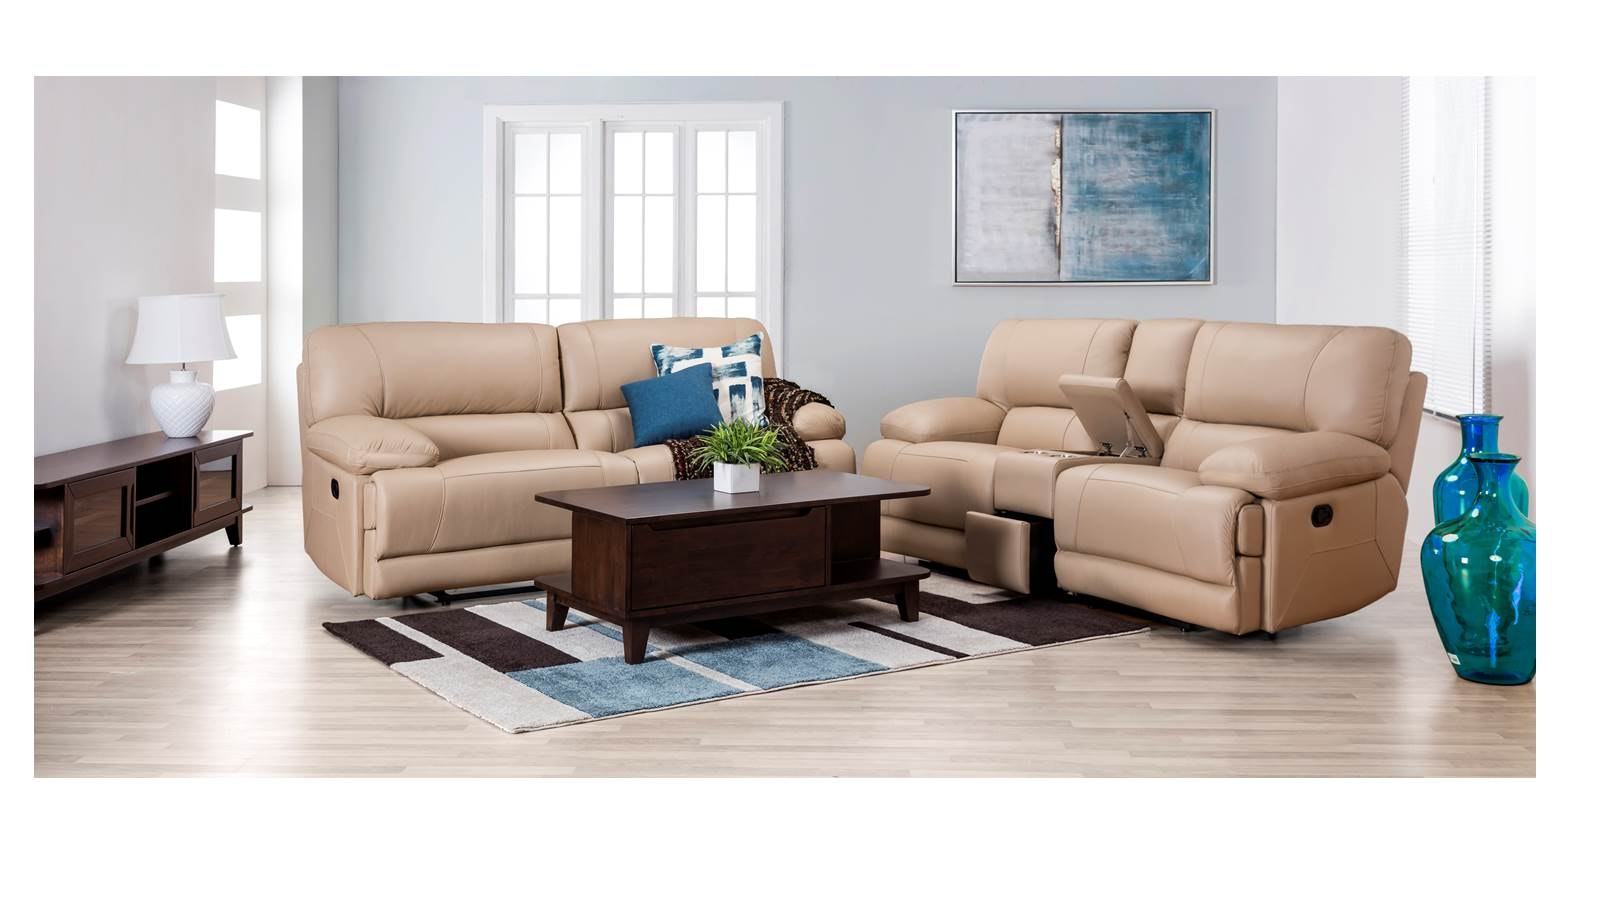 Cuboh 3 2 W Storage Full Leather Recliner Sofa Set Harvey  ~ Leather Reclining Sofa Set